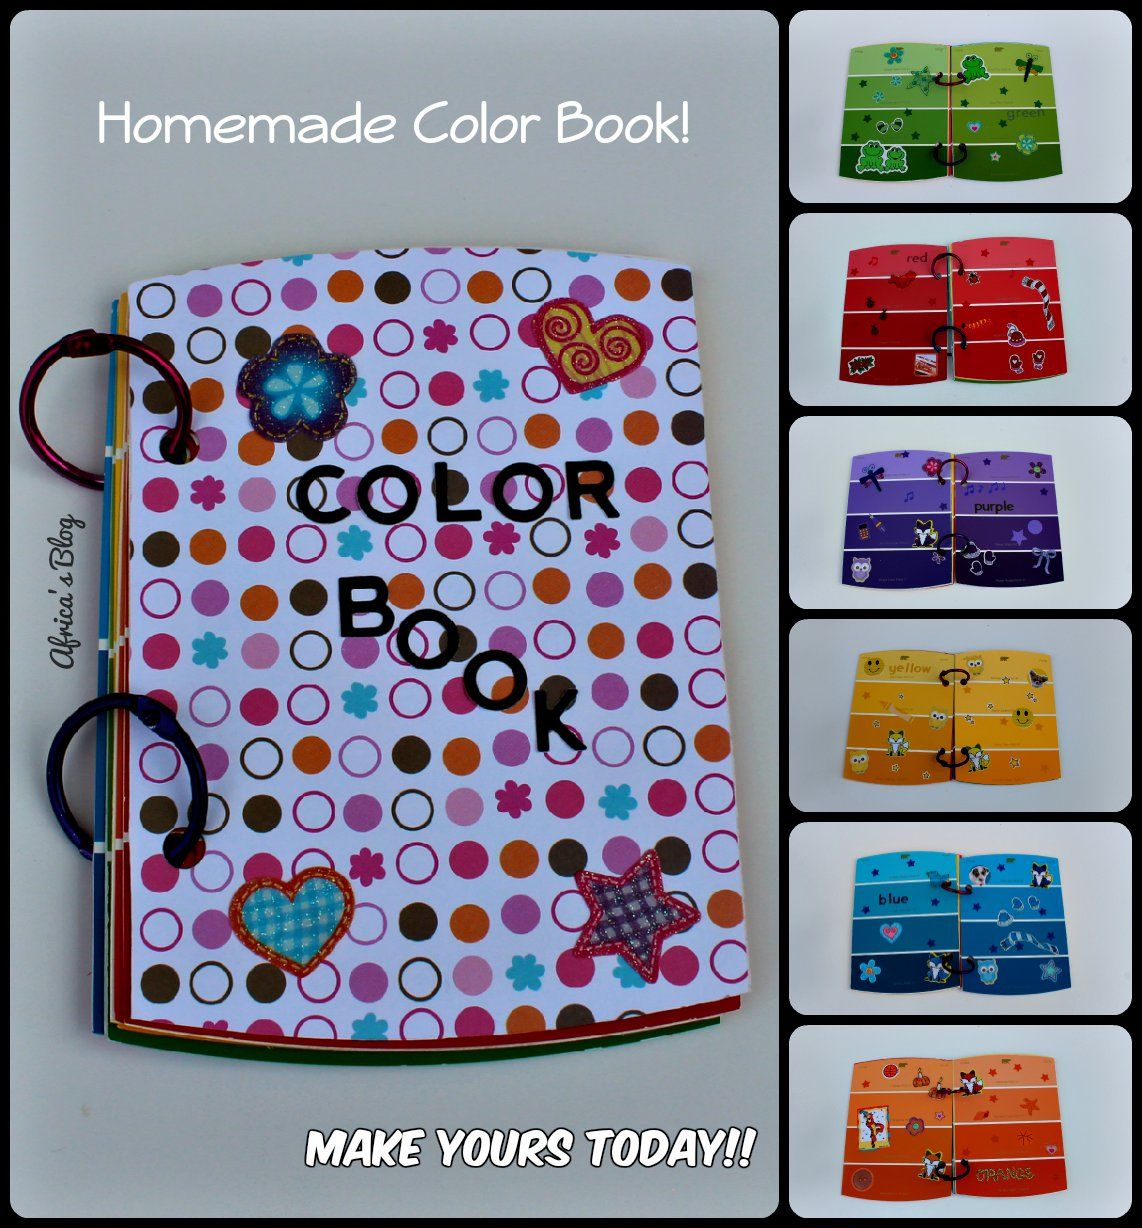 Teach Your Toddler Colors Homemade Color Book Diy Tutorial Toddler Coloring Book Diy Coloring Books Homemade Books